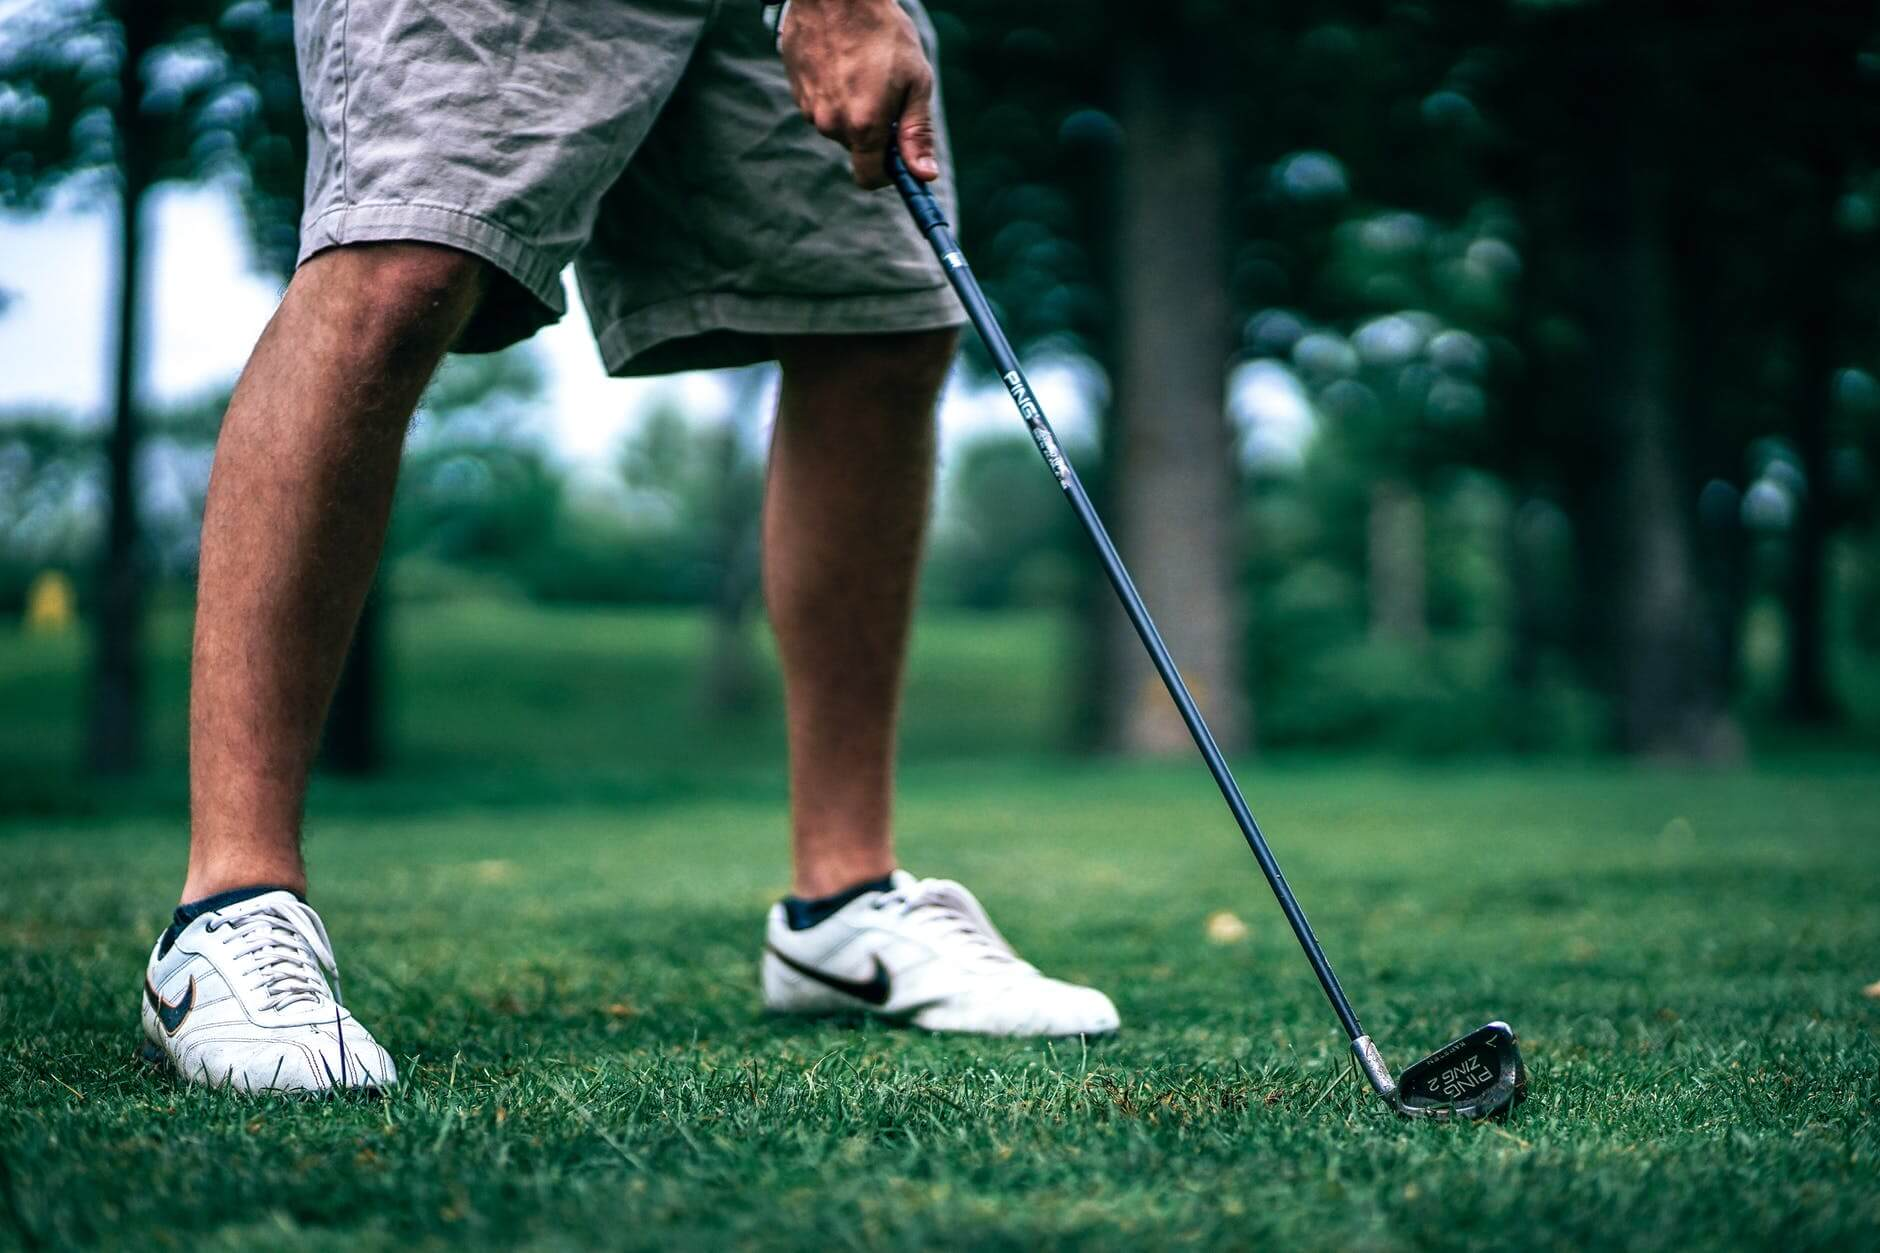 The Golf Course Management